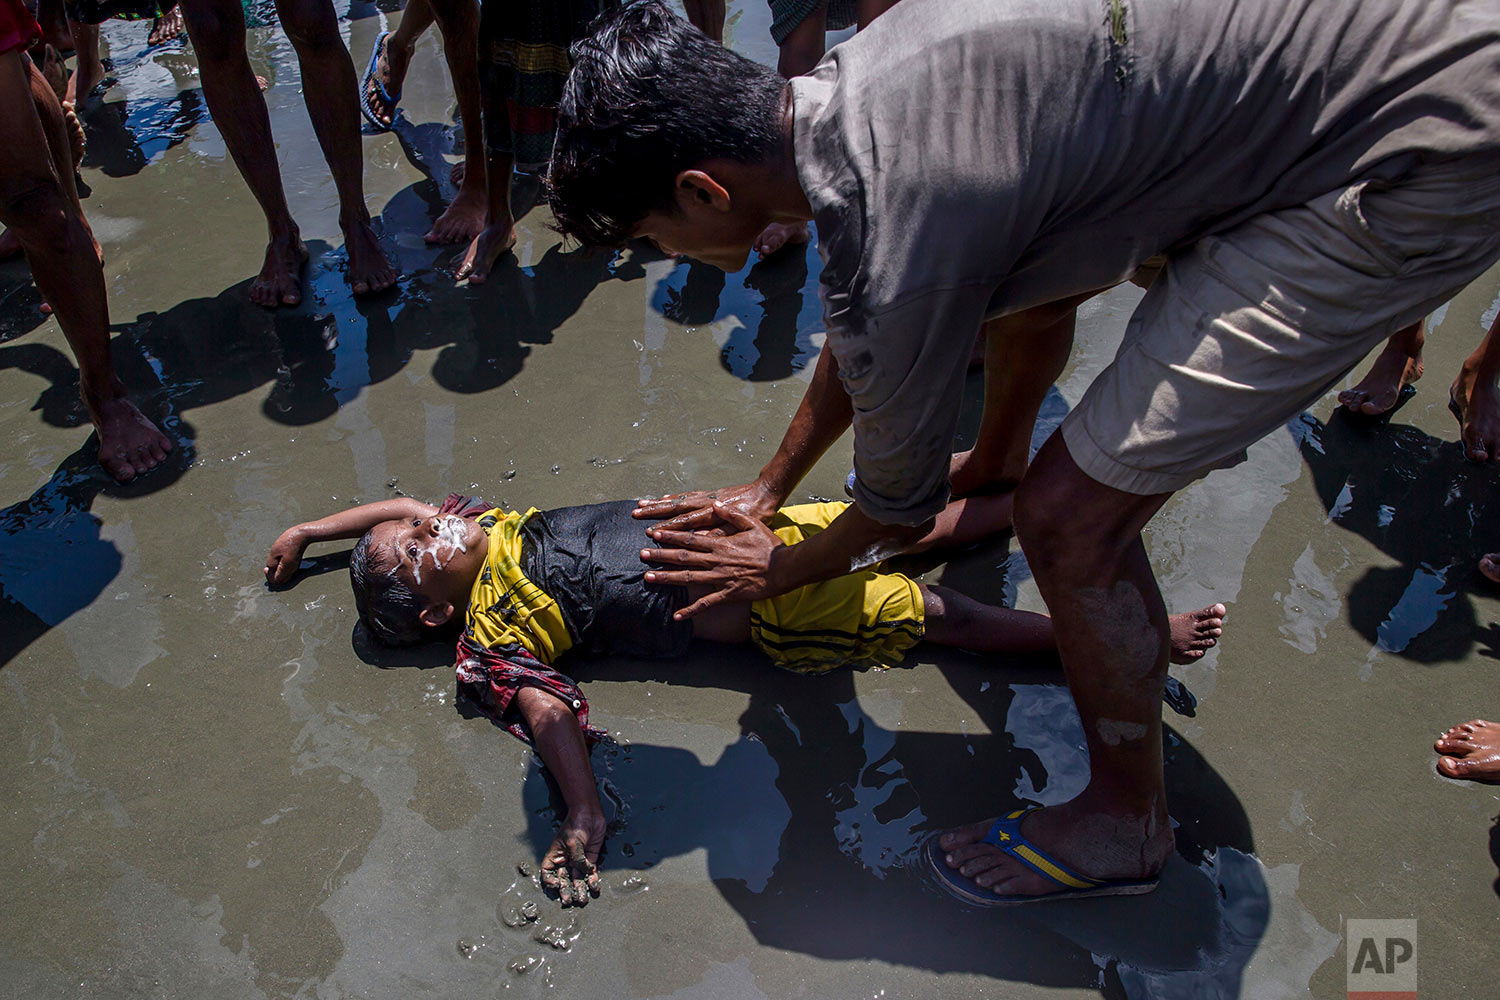 A Rohingya Muslim boy froths from the mouth as a man successfully tries to revive him after the boat he was traveling in capsized just before reaching shore at Shah Porir Dwip, Bangladesh, Thursday, Sept. 14, 2017.  (AP Photo/Dar Yasin)